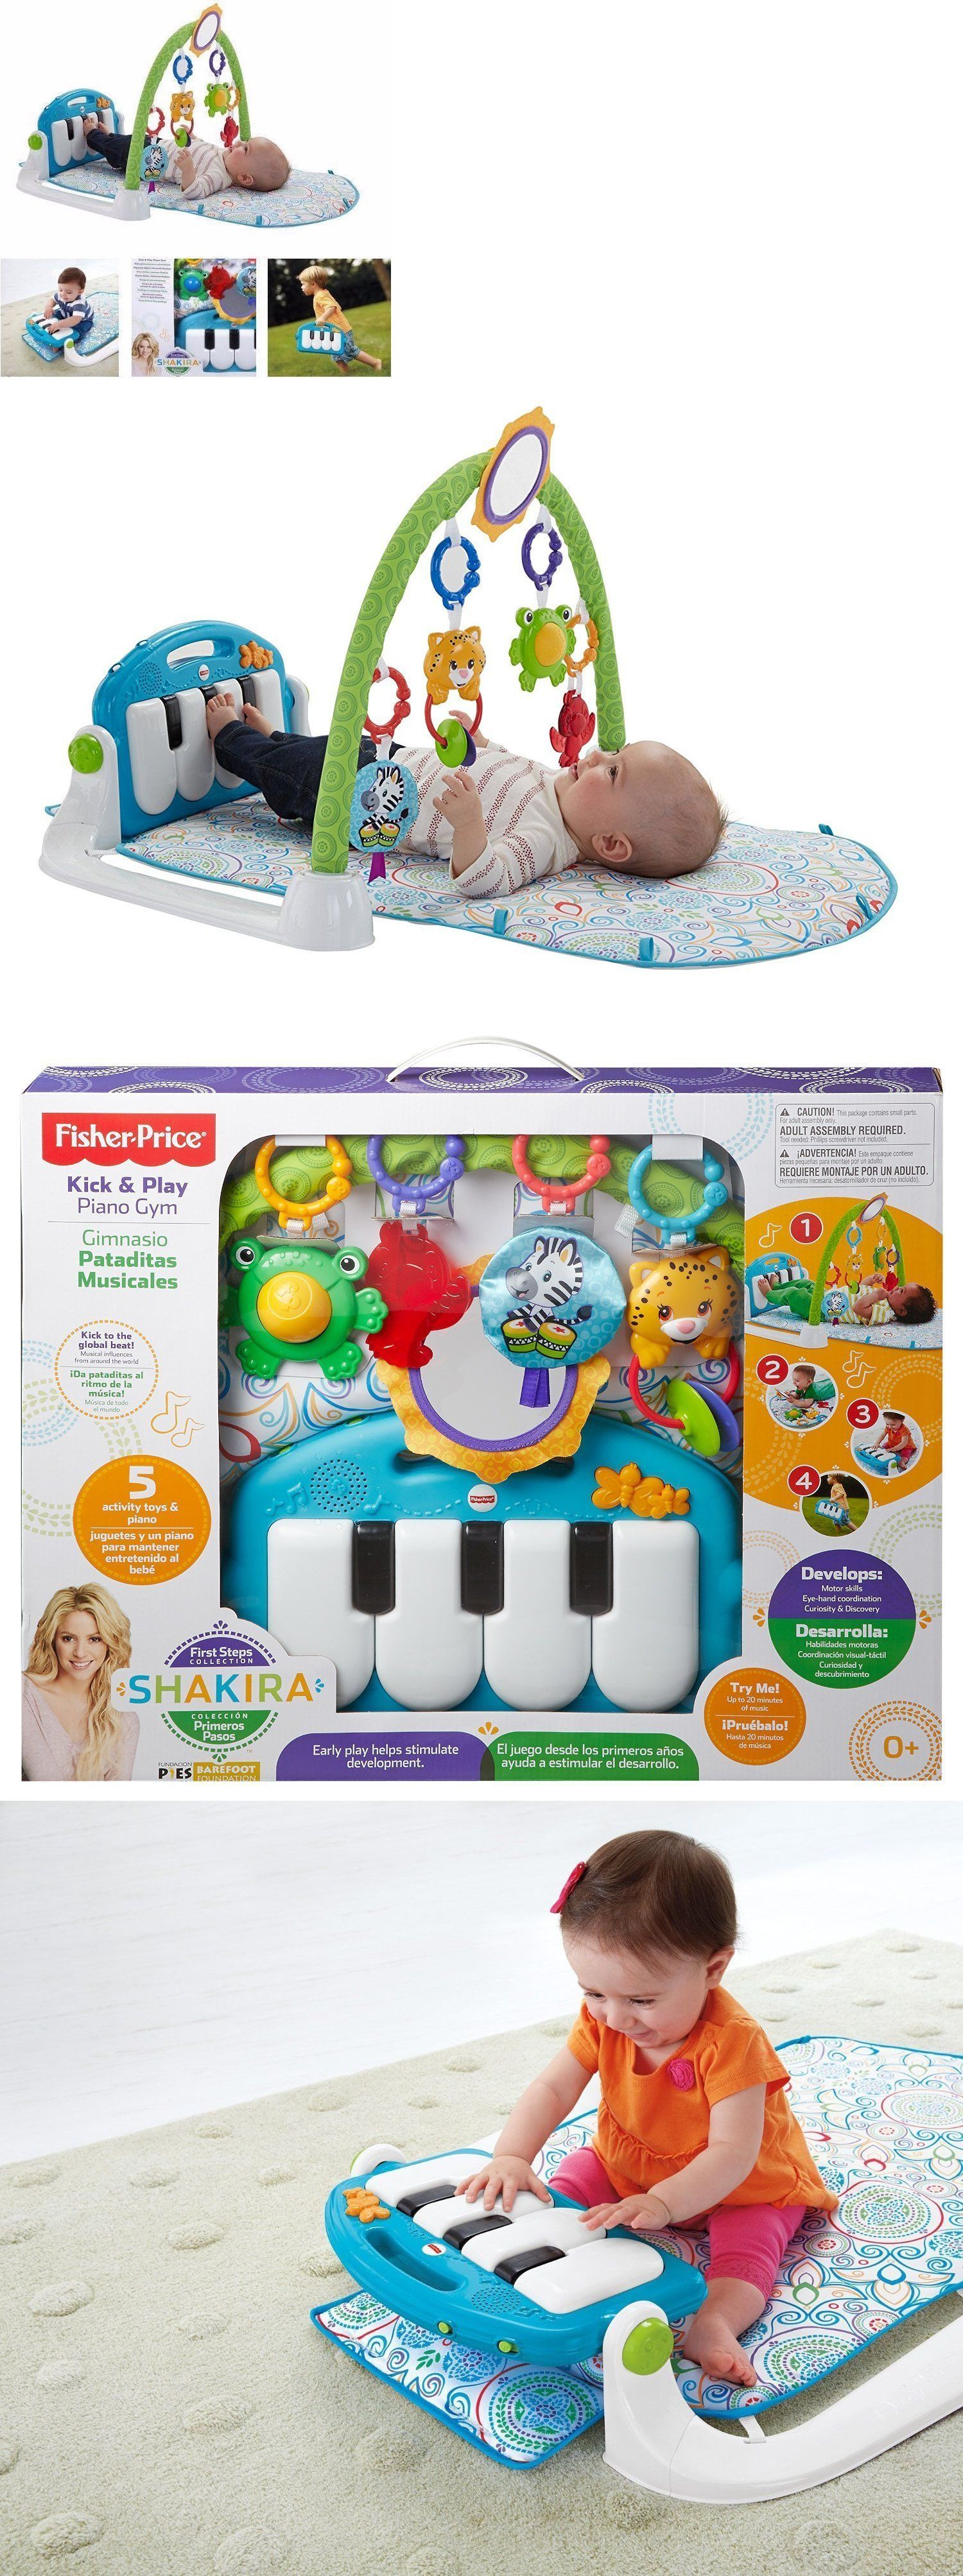 mat white baby padded image modern for activity pom and round products black mats babies floor play circle